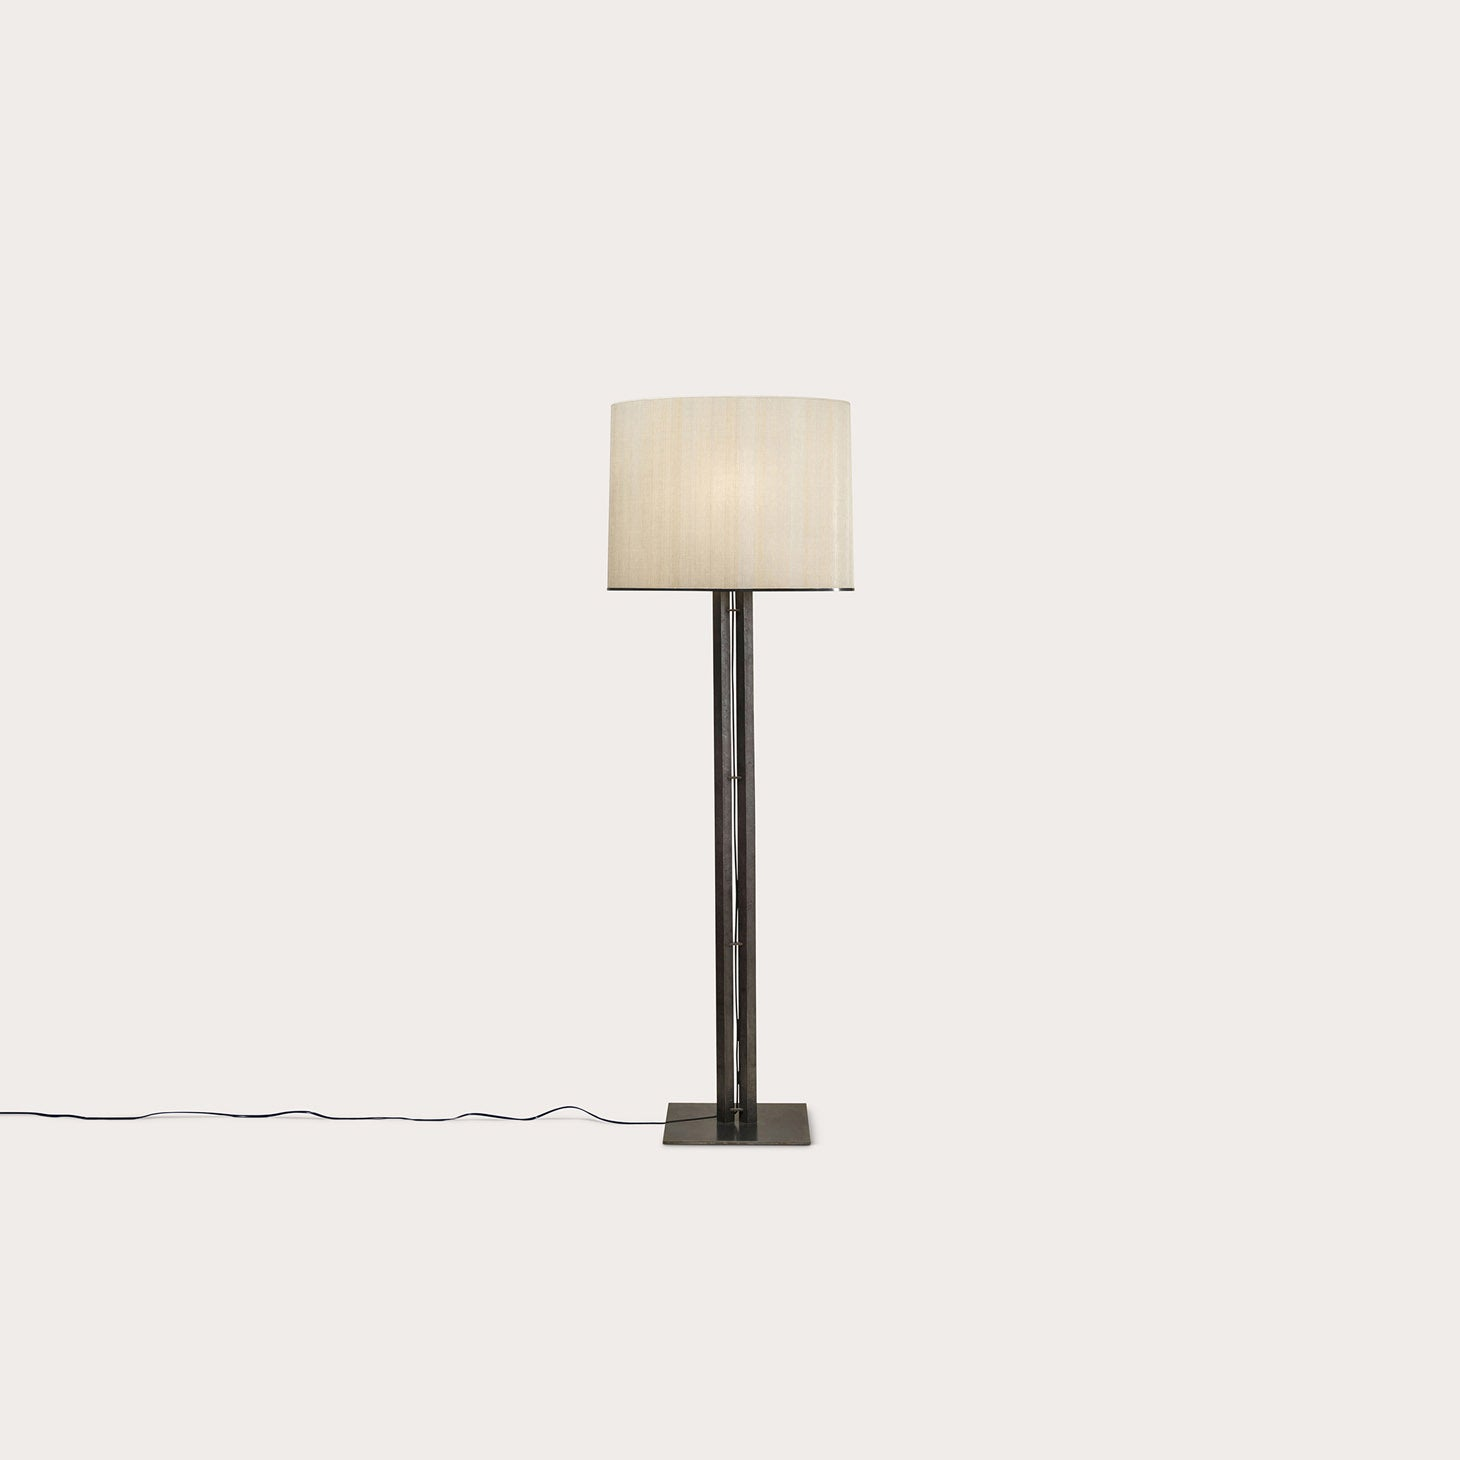 BAKAR Floor Lamp Lighting Bruno Moinard Designer Furniture Sku: 773-160-10002